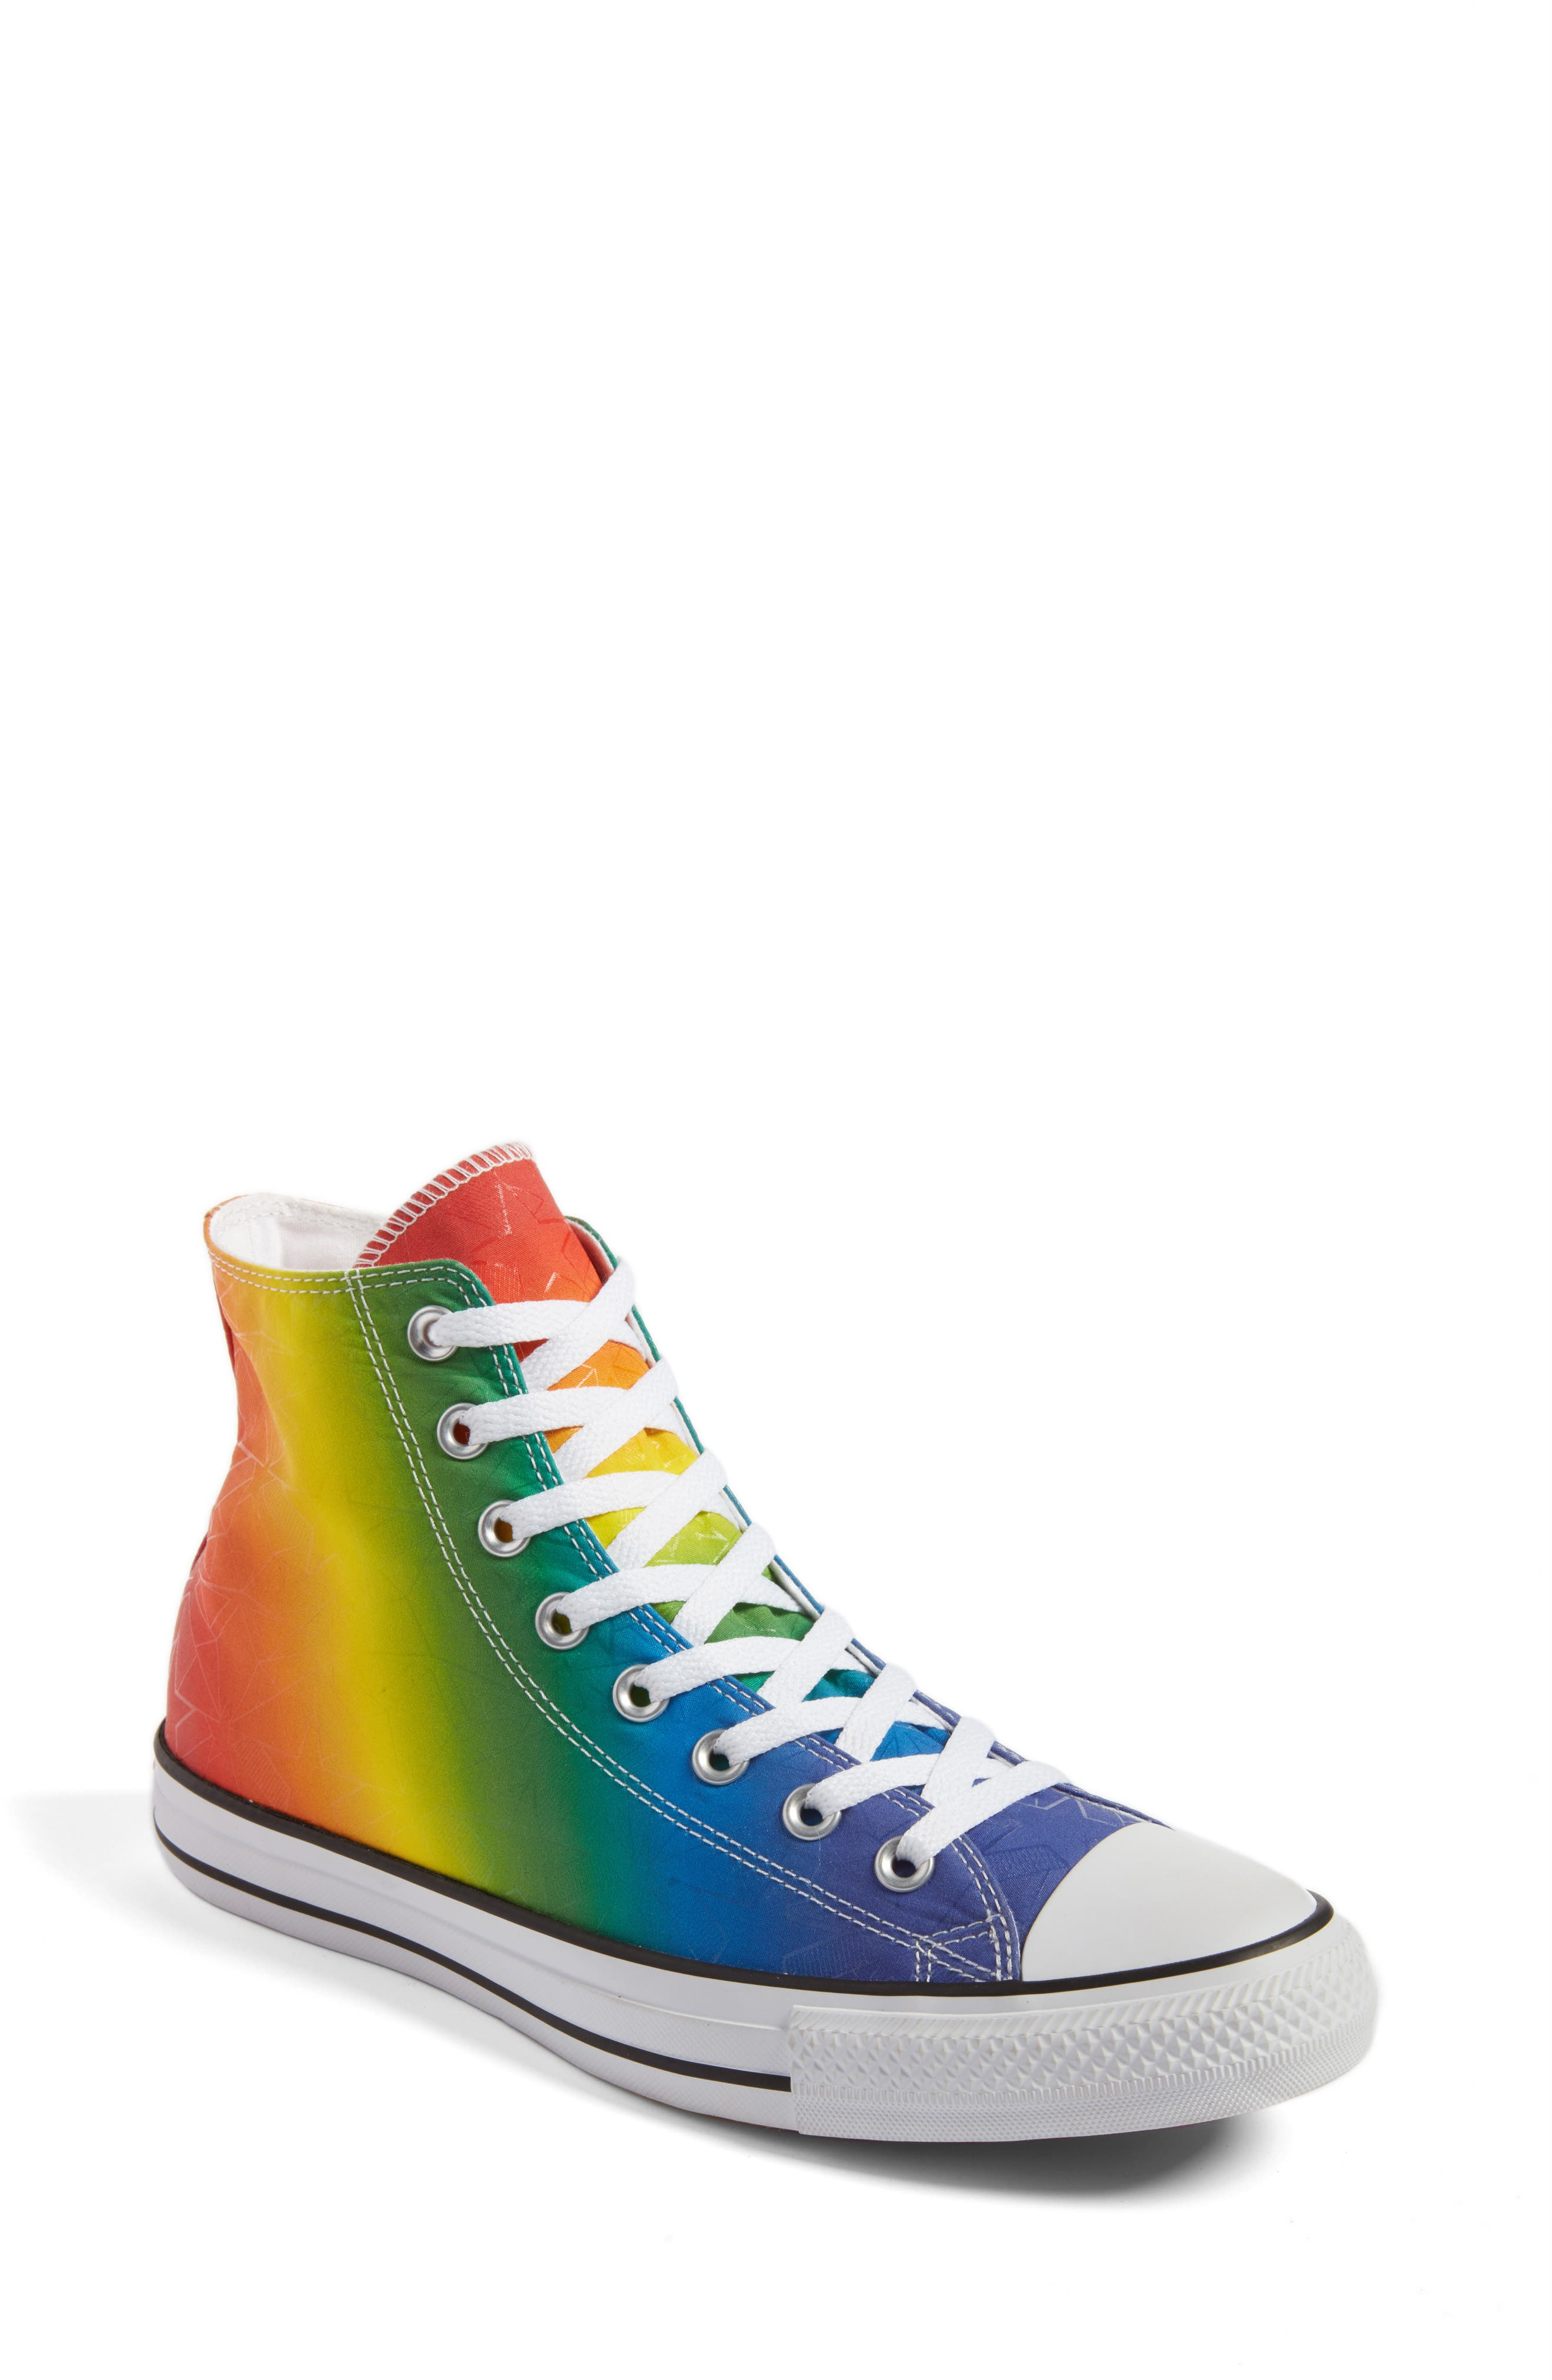 Chuck Taylor<sup>®</sup> All Star<sup>®</sup> Pride High Top Sneaker,                             Main thumbnail 1, color,                             Purple